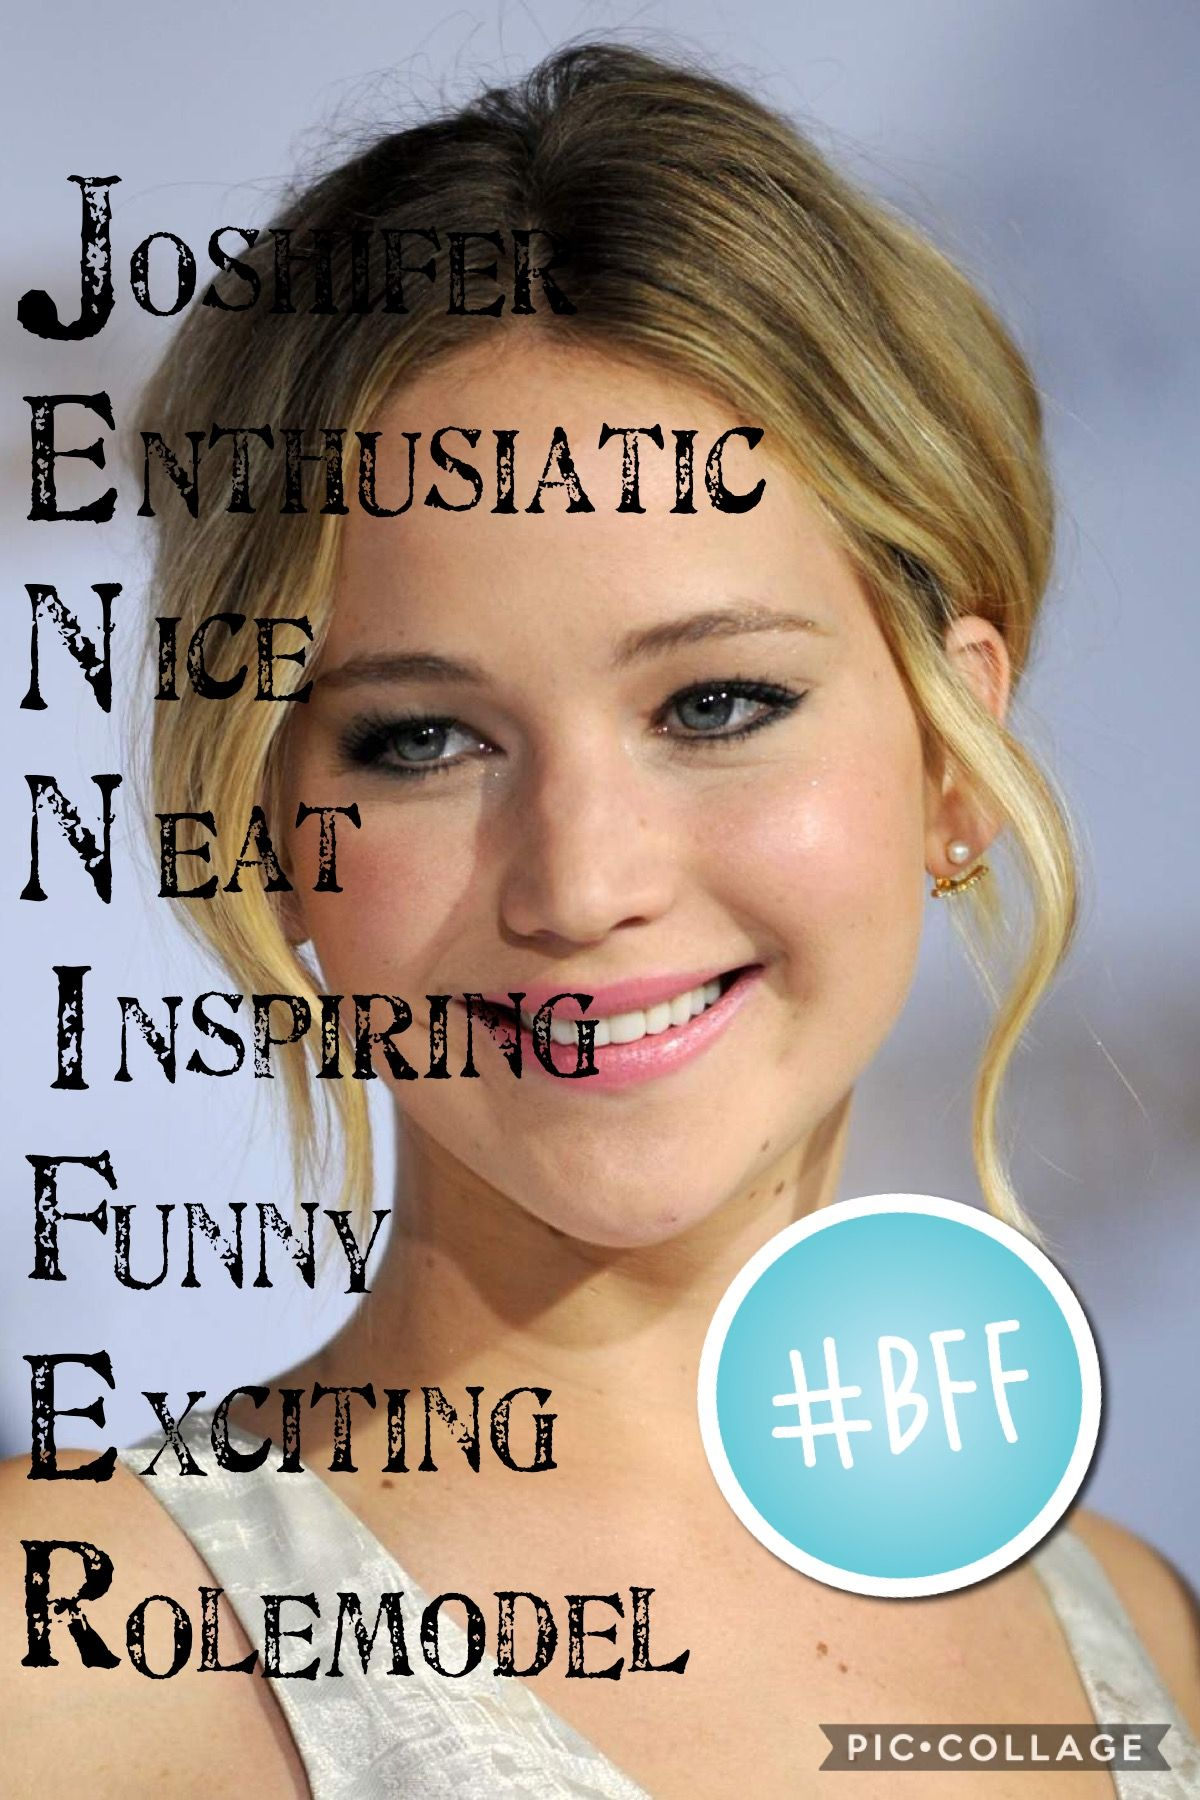 My idol❤️ we honestly would be besties if you're reading this Jen, I love you so much and I would love to meet you in LA❤️✌️